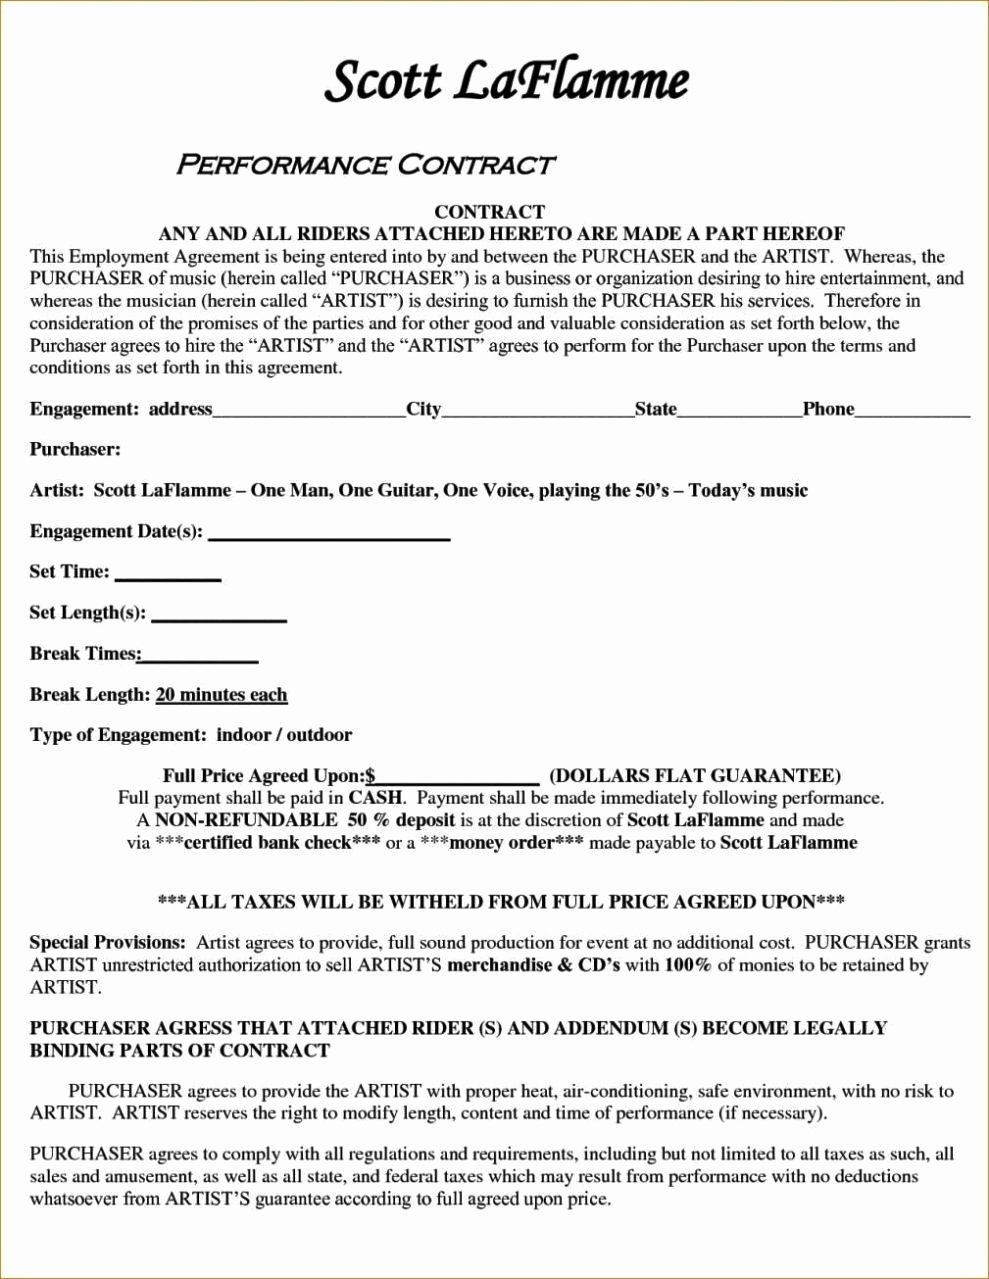 Artist Performance Contract Template Lovely Artist Performance Contract Template Sampletemplatess